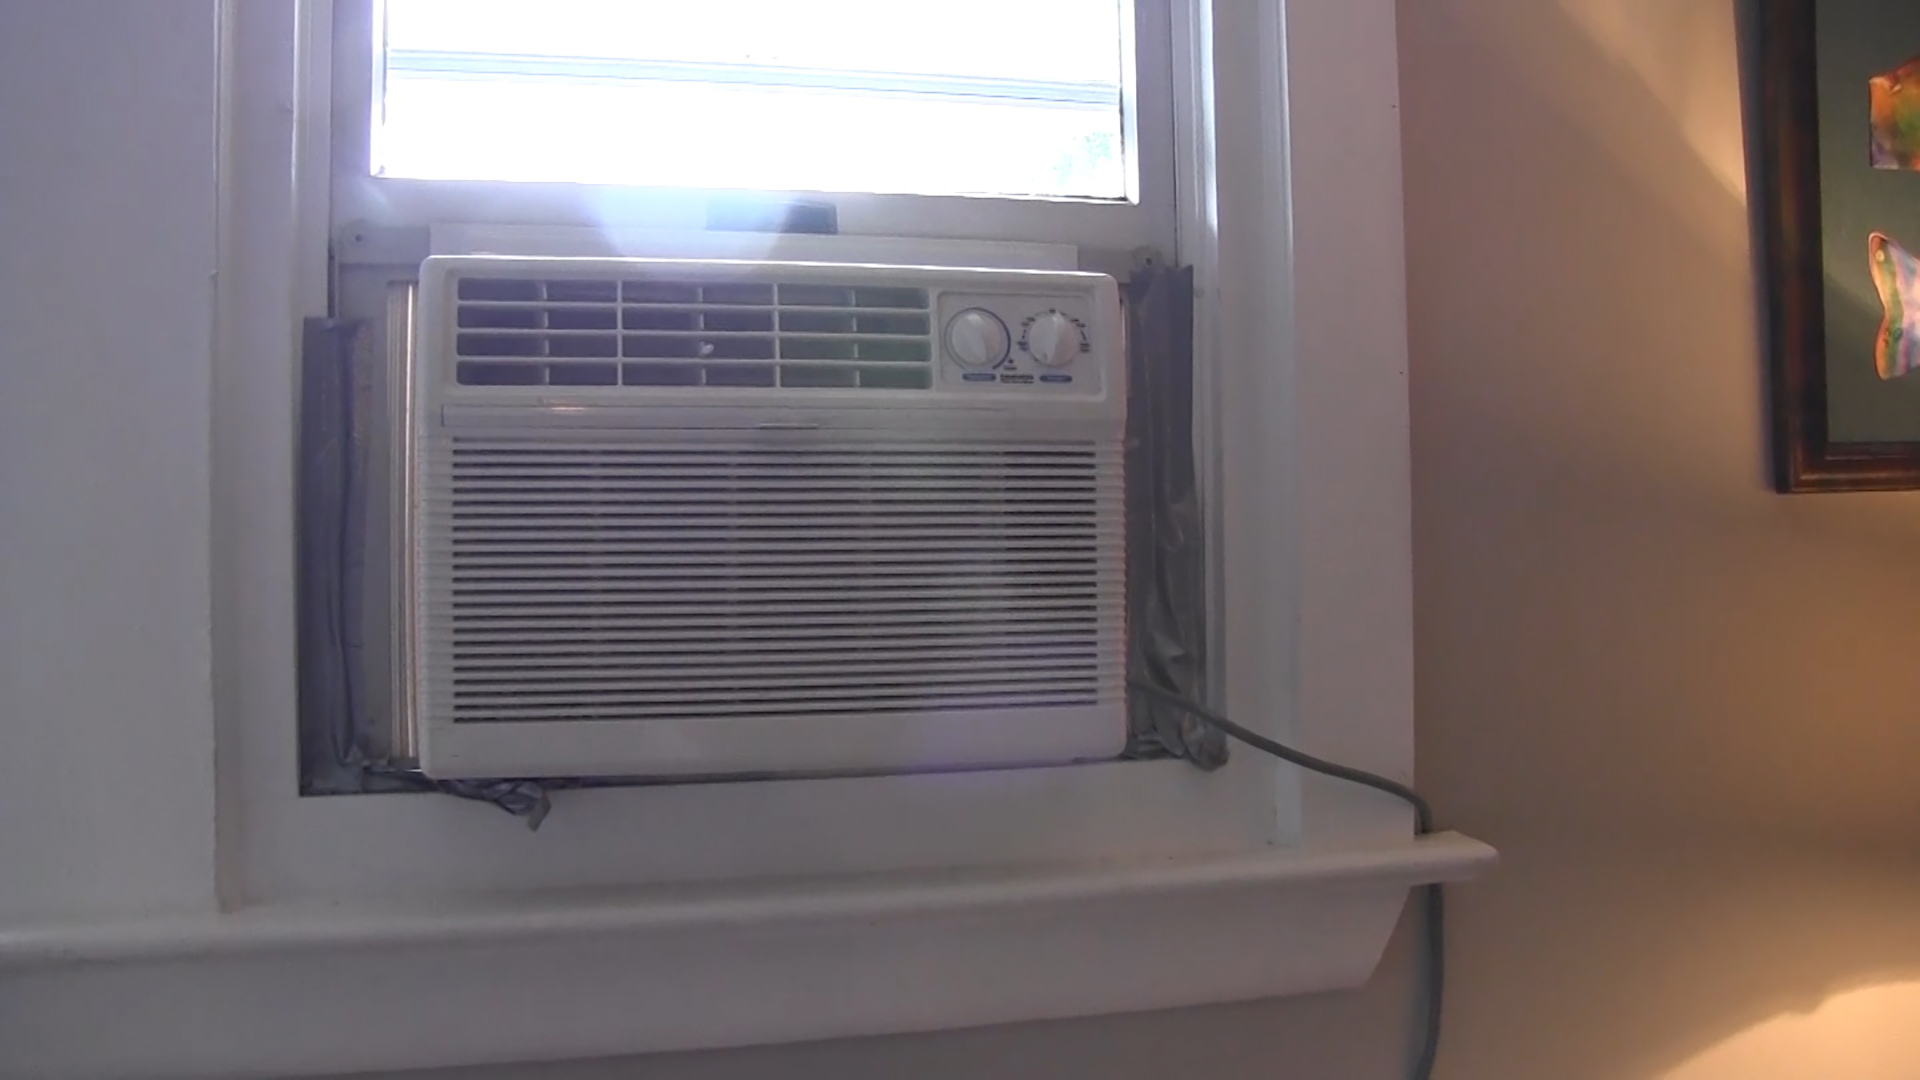 Hotel Air Conditioners For Sale Troubleshooting 8 Common Air Conditioner Problems Consumer Reports